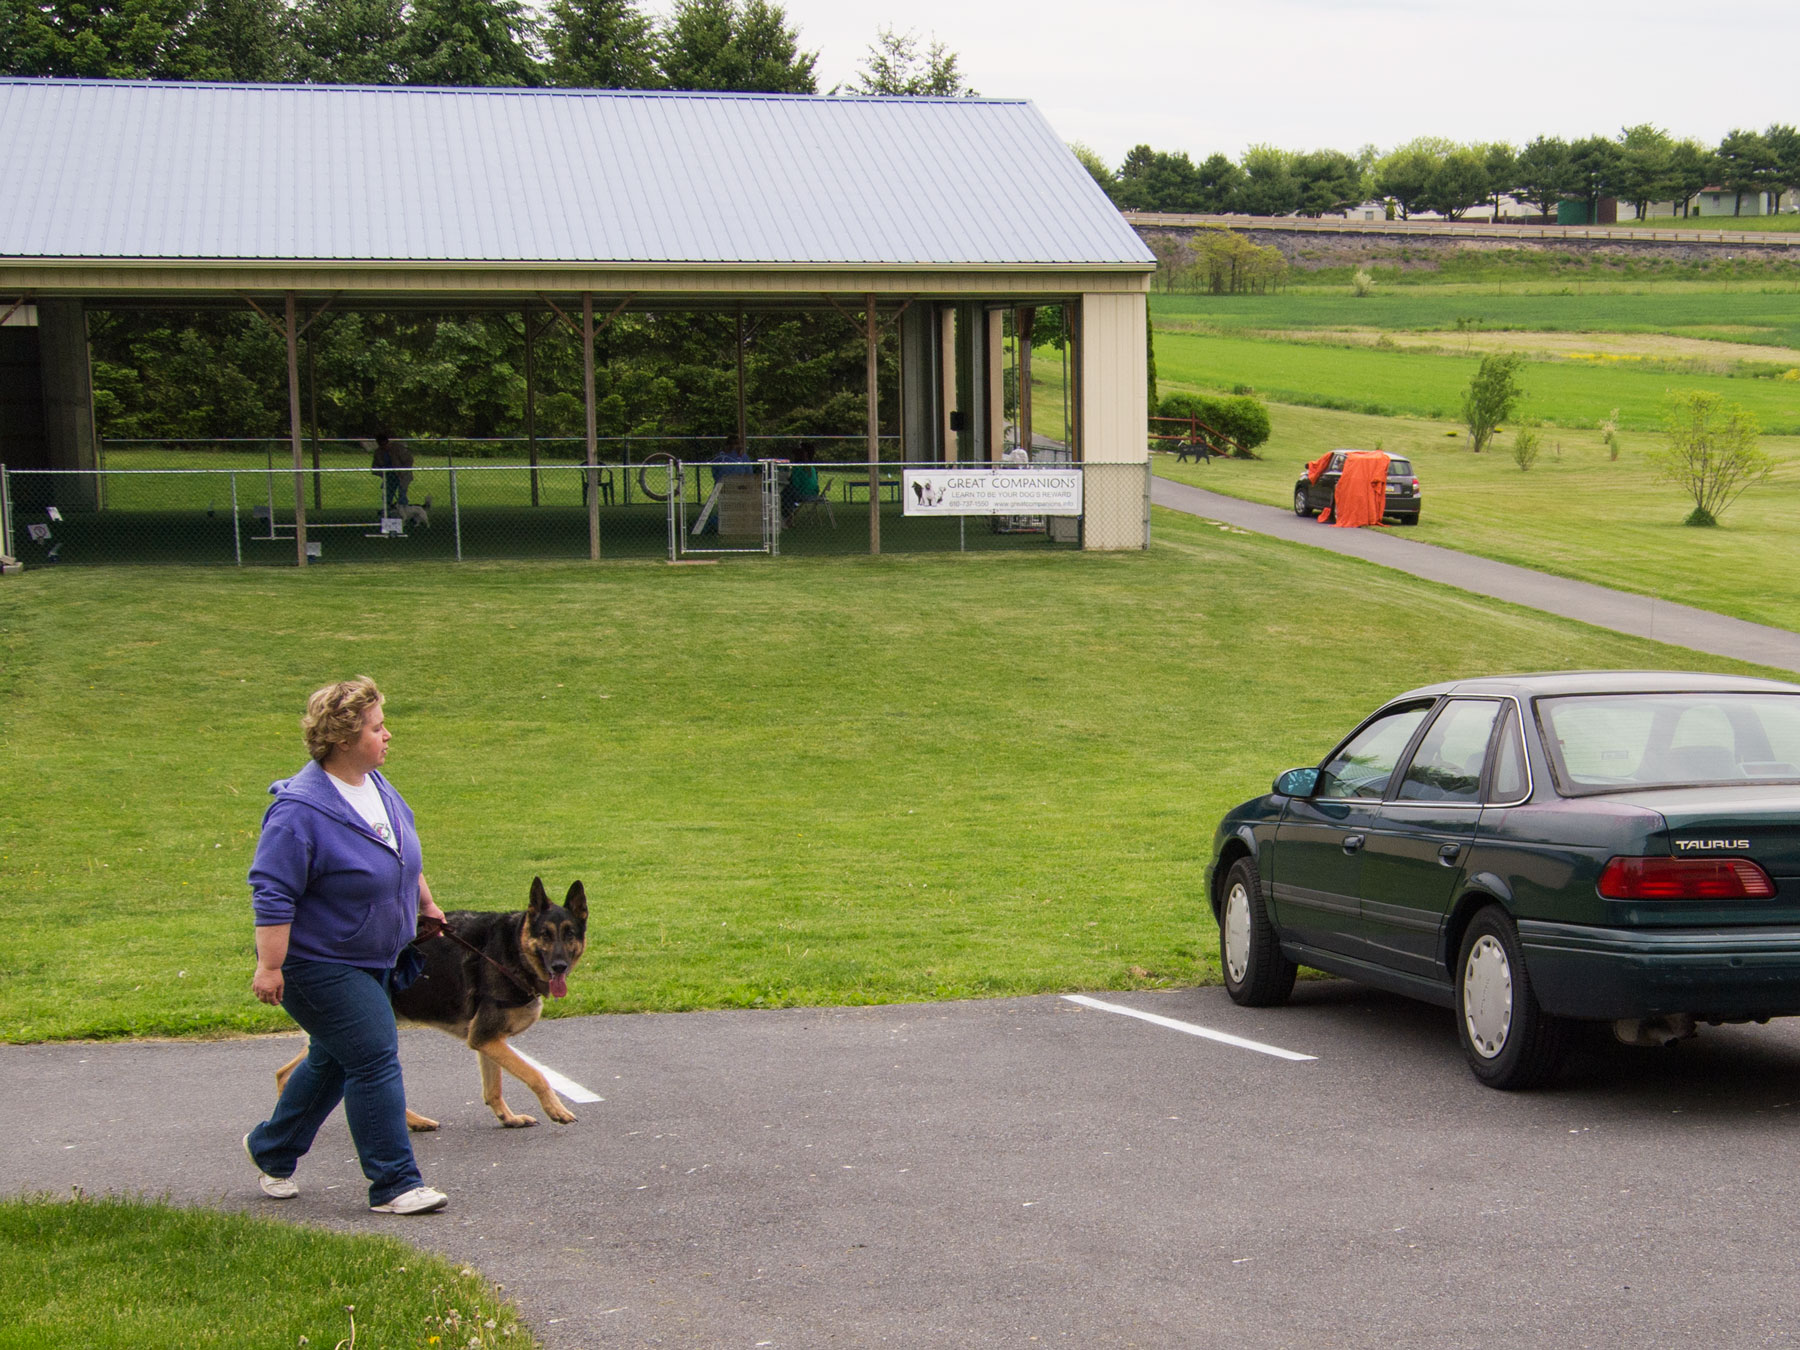 After their exercise, Michele and Rocky head back to their car for a few moments before beginning another round.